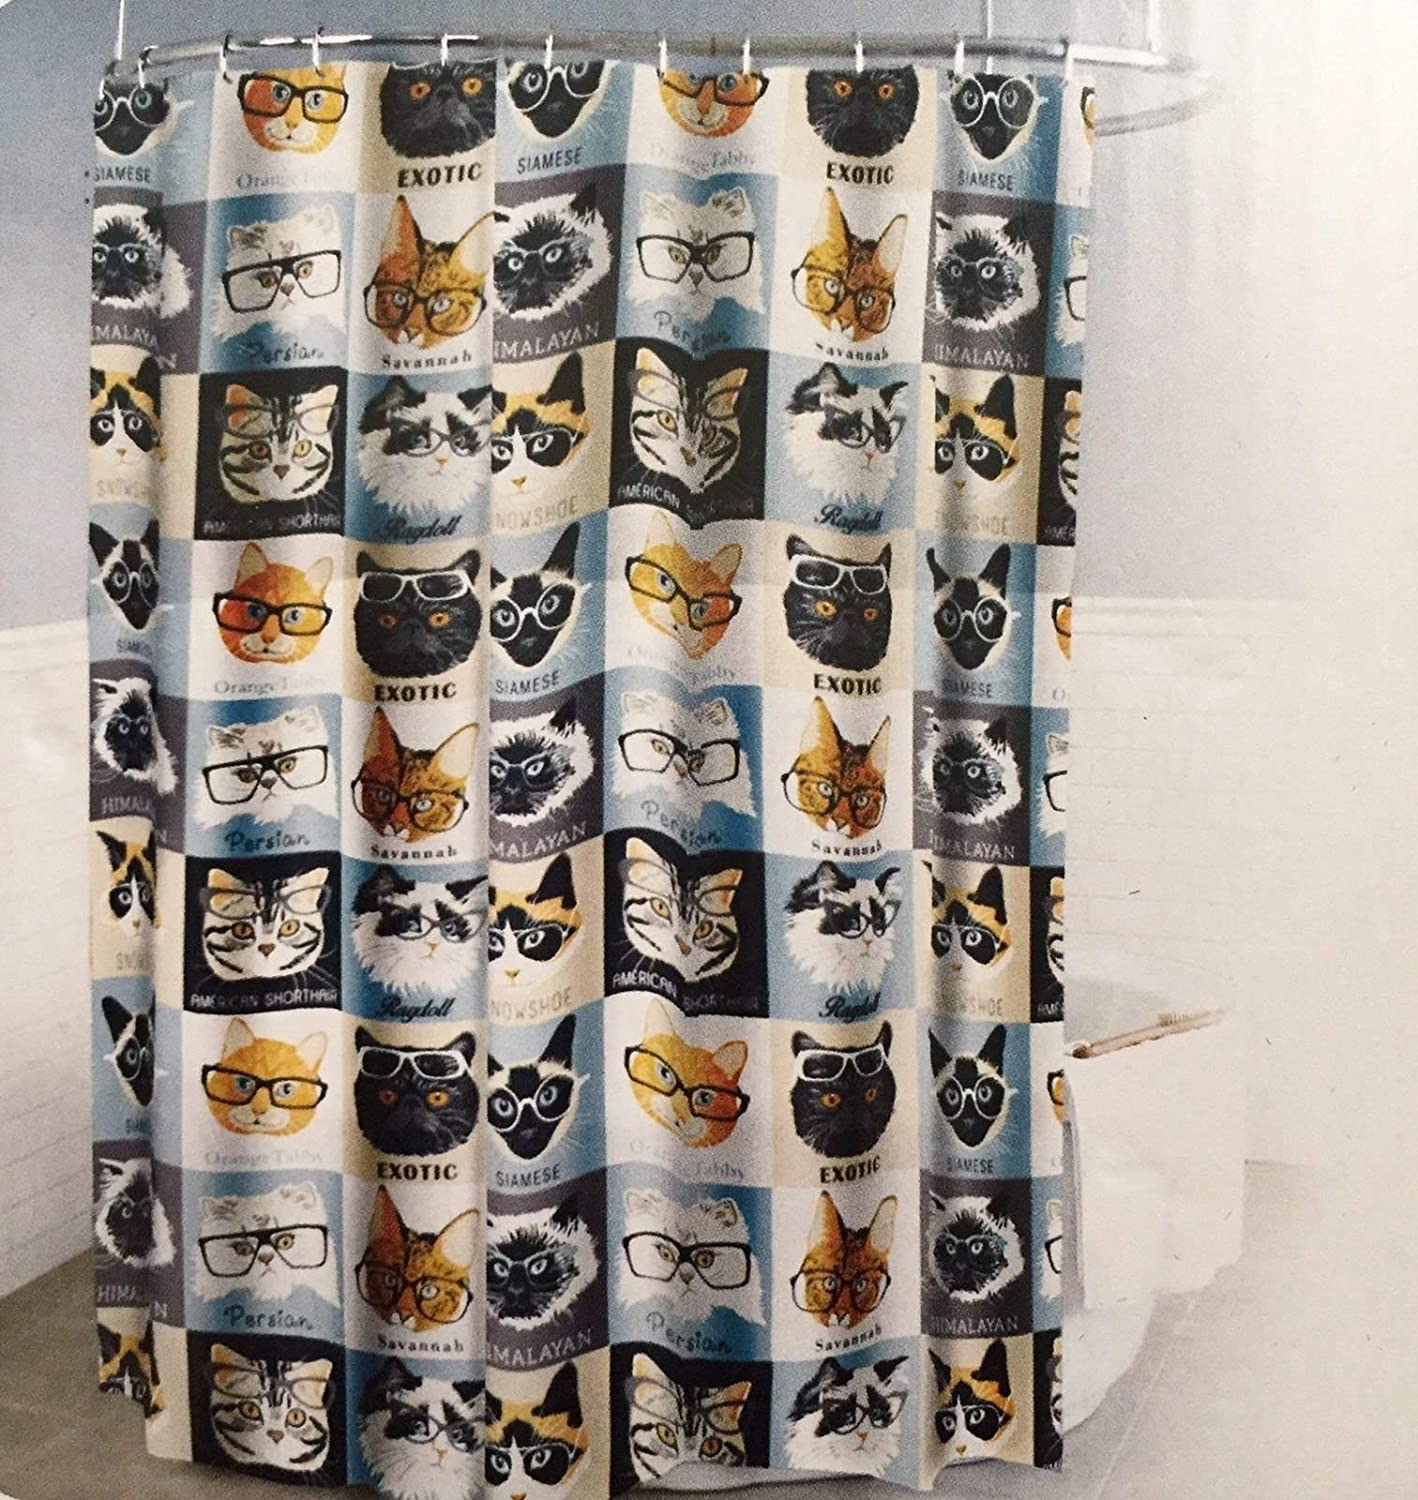 Splash Home Peva 4G Cats & Glasses Curtain Liner Design for Bathroom Showers and Bathtubs Free of Pvc Chlorine and Chemical Smell-Eco-Friendly-100% Waterproof, 72 X 70 Inch-Hazel, 70 x 72 Inch, Ice